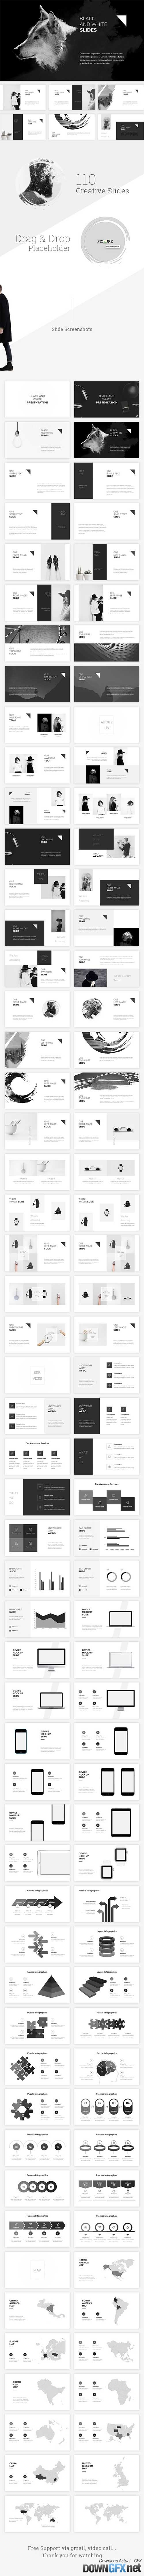 Black and White Powerpoint Template 20006597